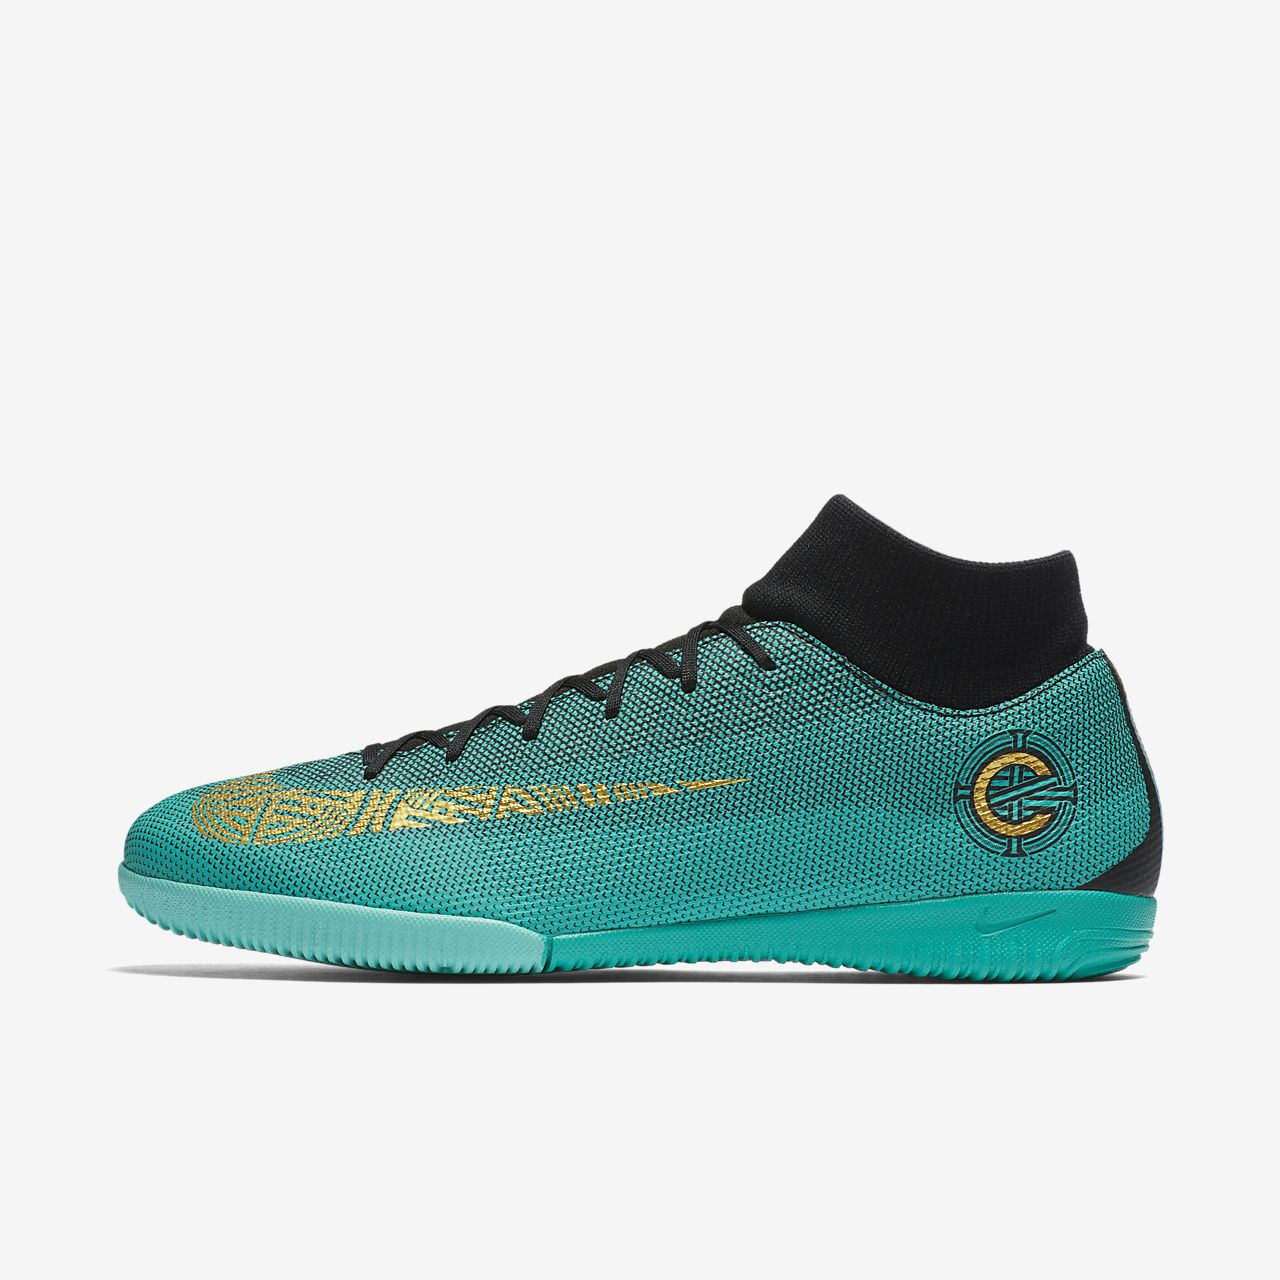 ... Nike MercurialX Superfly VI Academy CR7 IC Indoor/Court Football Shoe